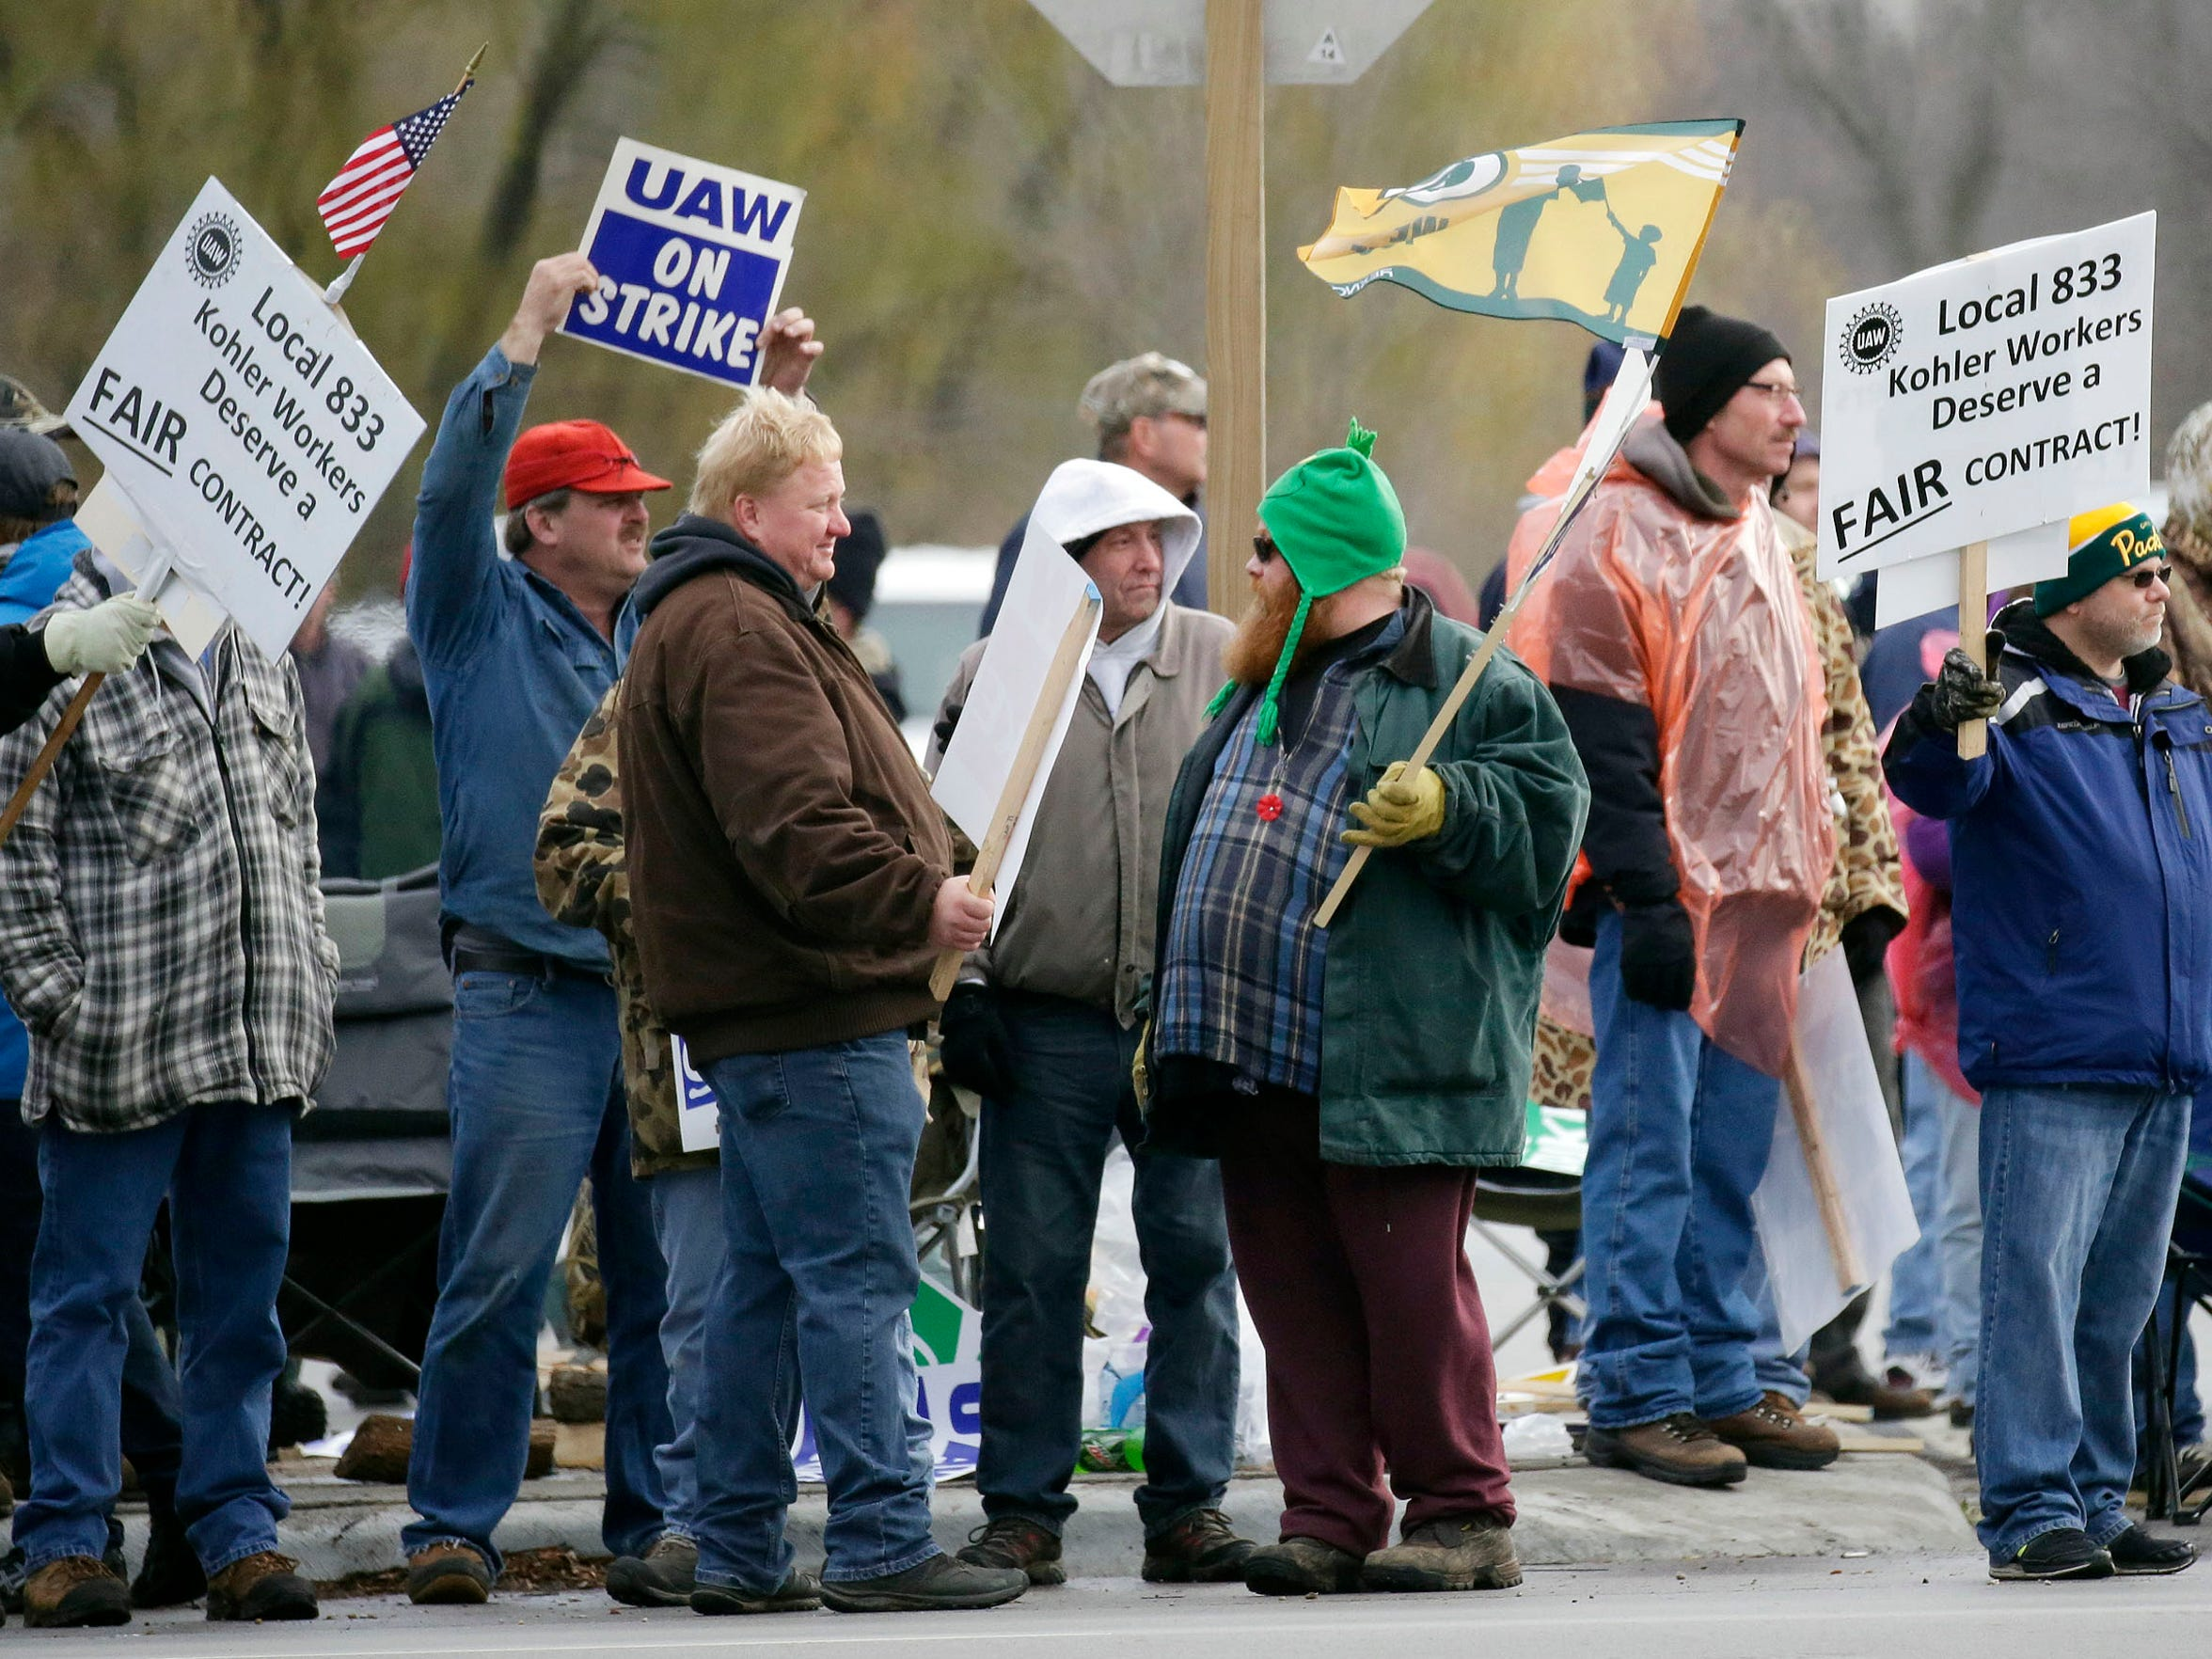 Striking members of UAW Local 833 stand in a picket line along Highland Avenue Tuesday November 17, 2015 in Kohler.